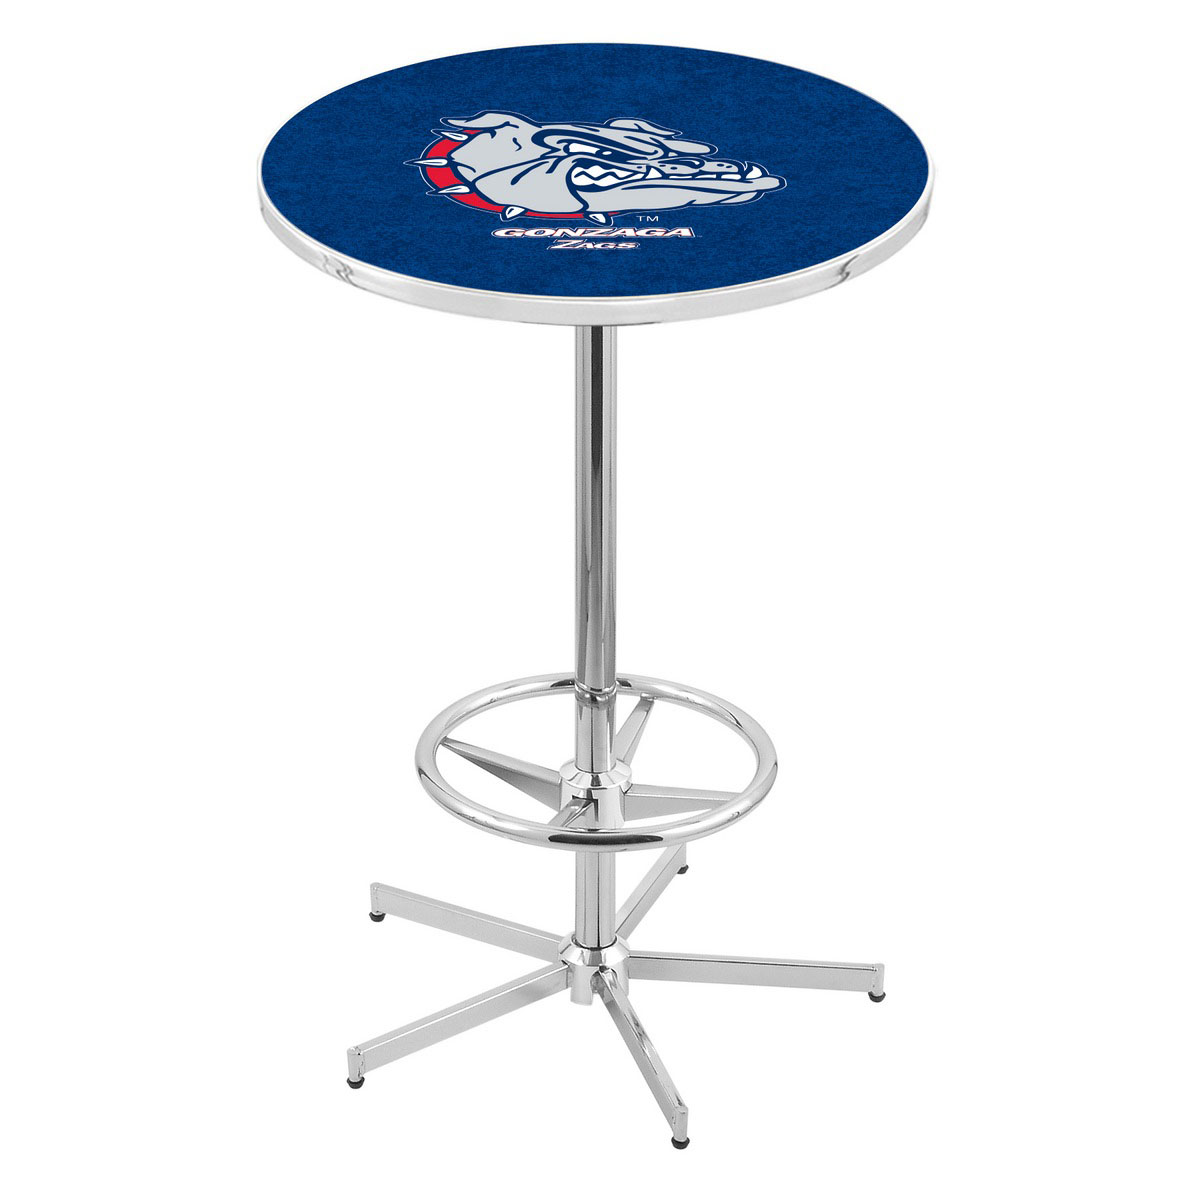 Check out the Chrome Gonzaga Pub Table Product Photo